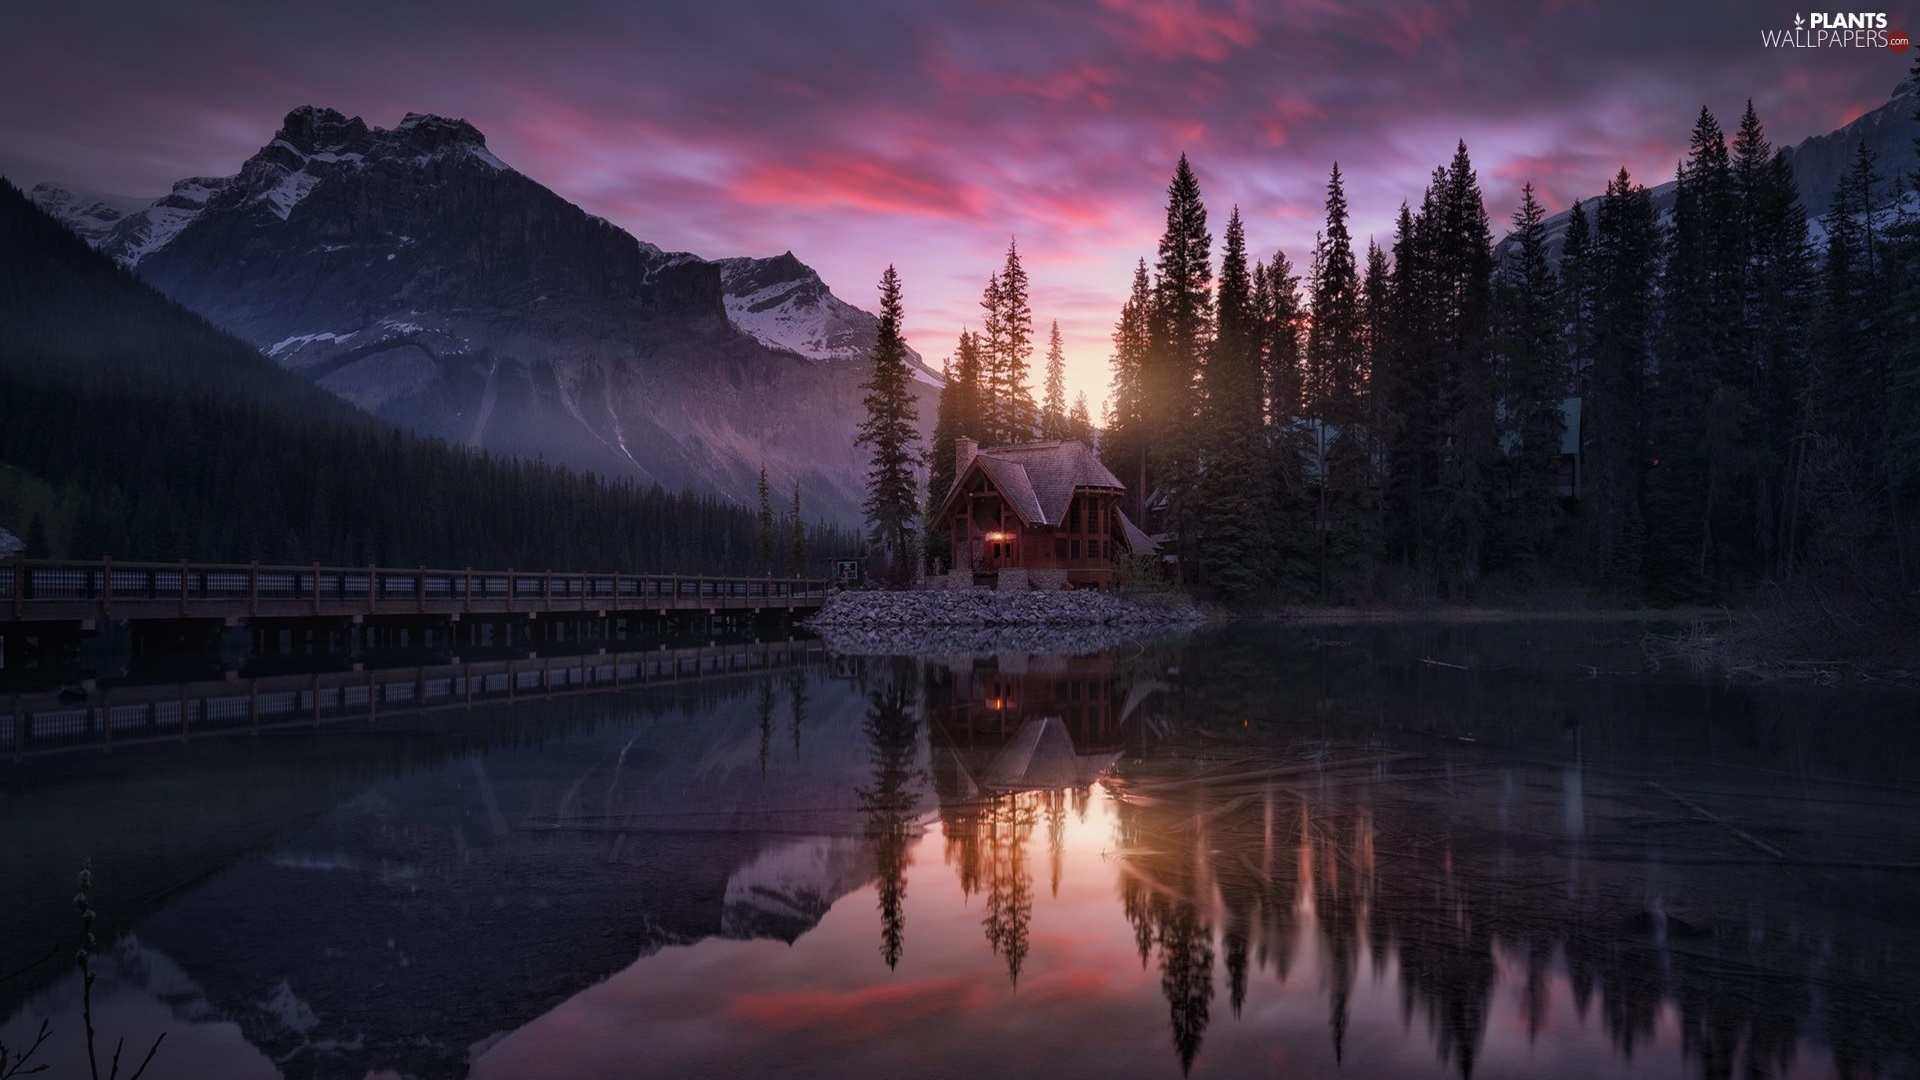 trees, Emerald Lake, Province of British Columbia, house, Canada, clouds, Floodlit, viewes, bridge, Yoho National Park, Mountains, Great Sunsets, lake